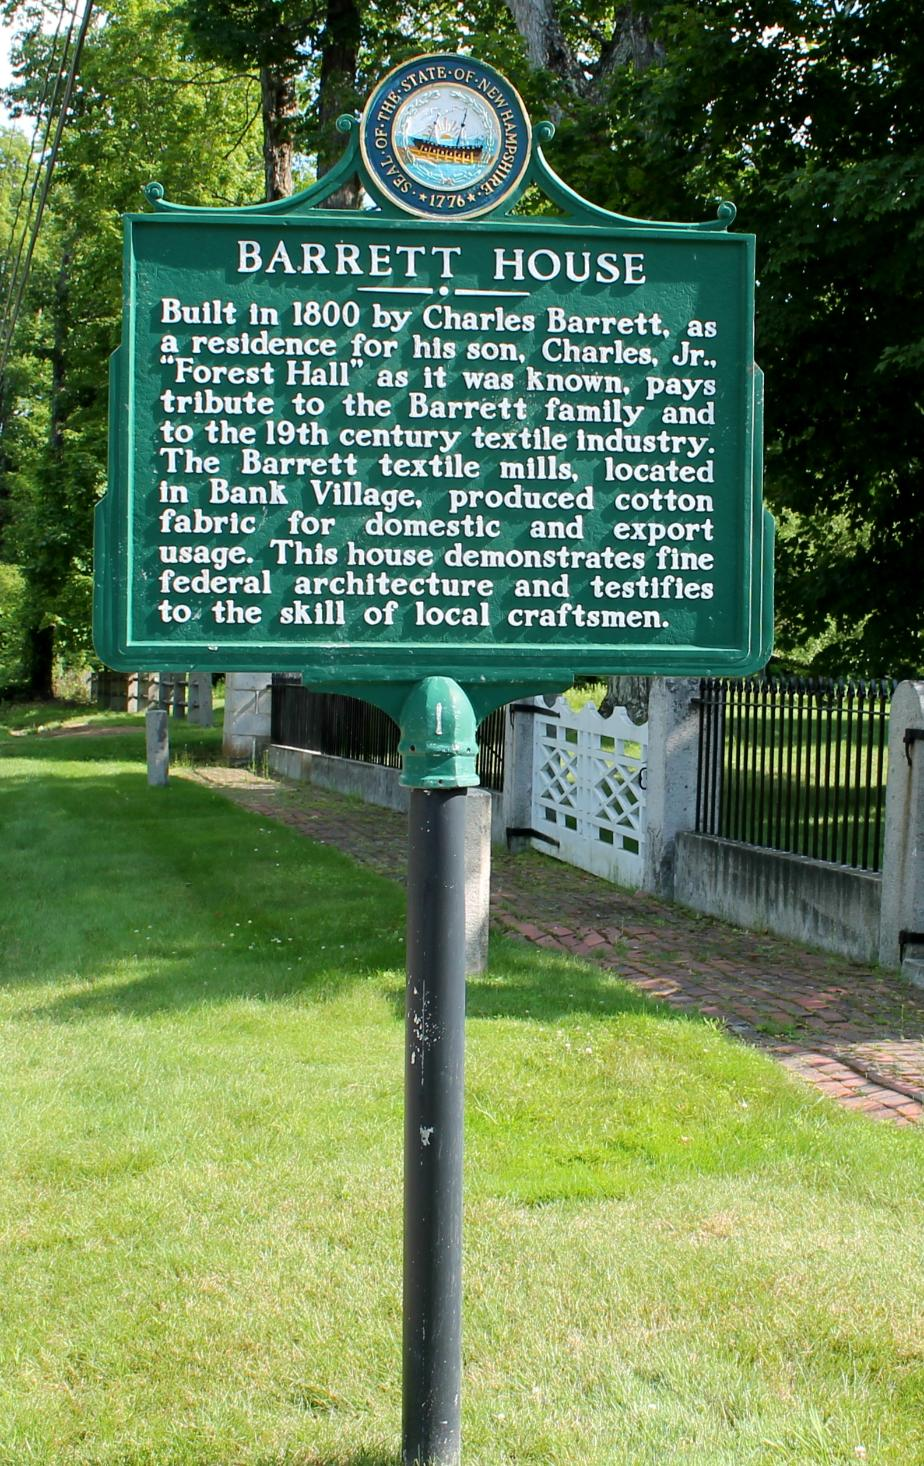 Barrett House Historical Marker - New Ipswich New Hampshire